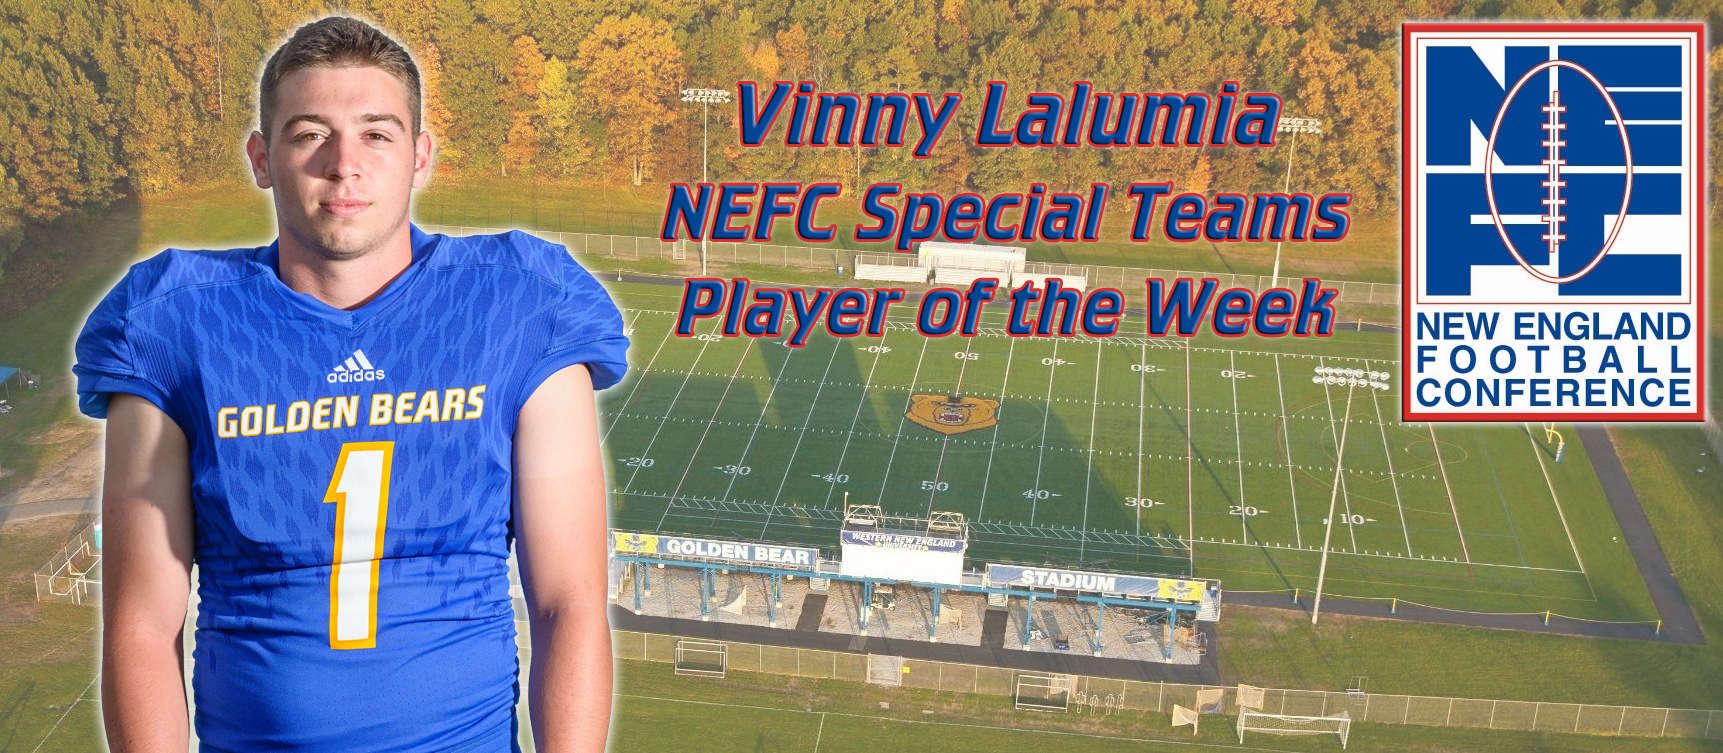 Vinny Lalumia Named NEFC Special Teams Player of the Week